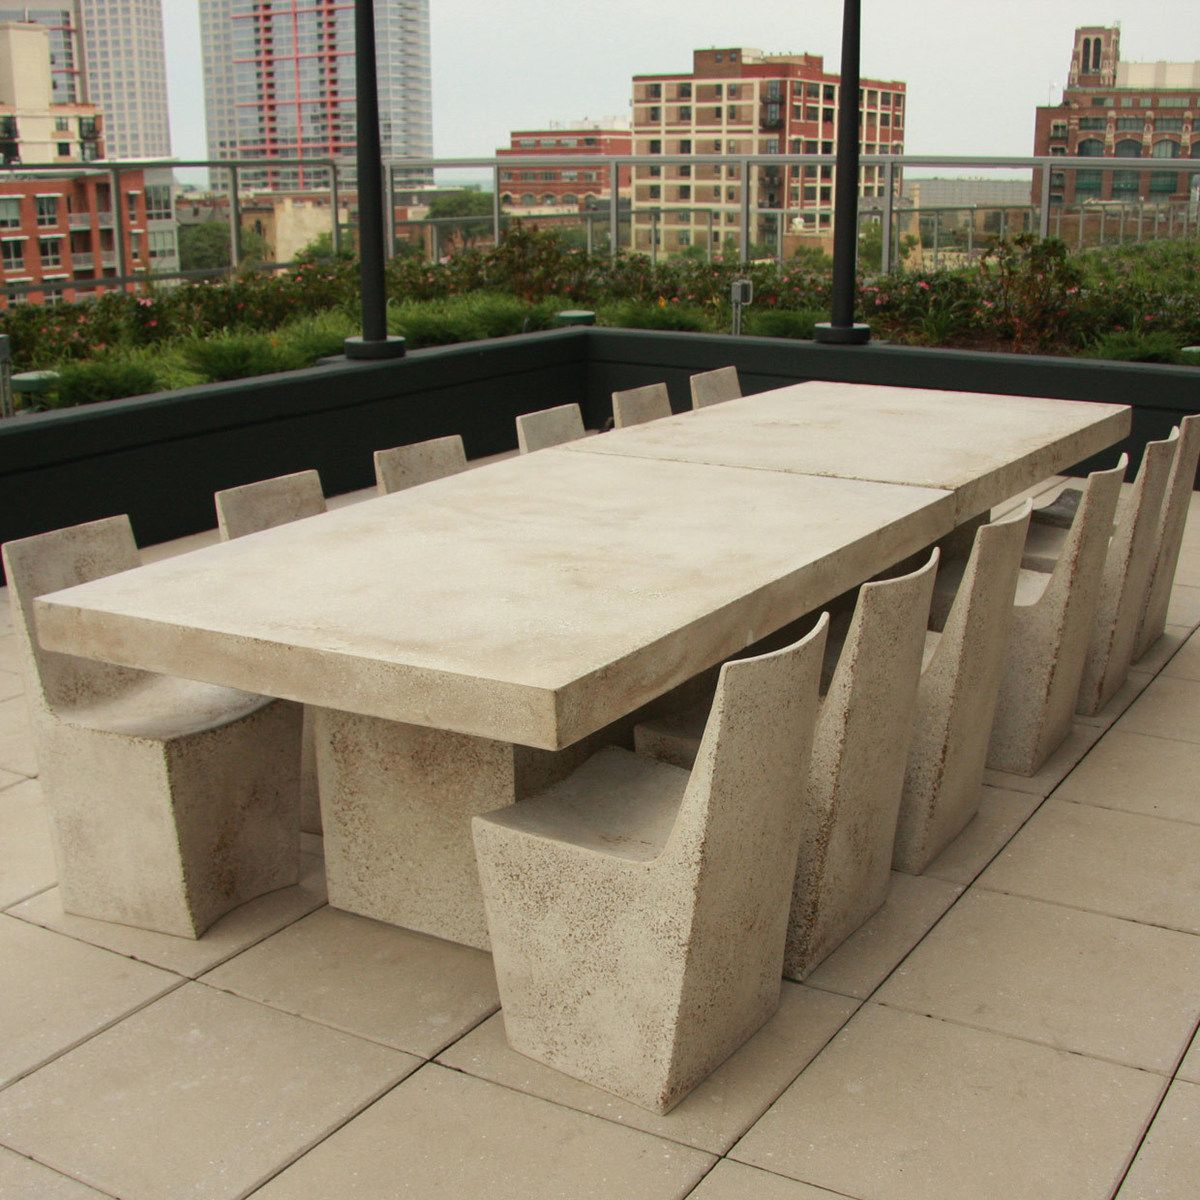 Stone Slab Table And Chairs Looks Heavy Right Well